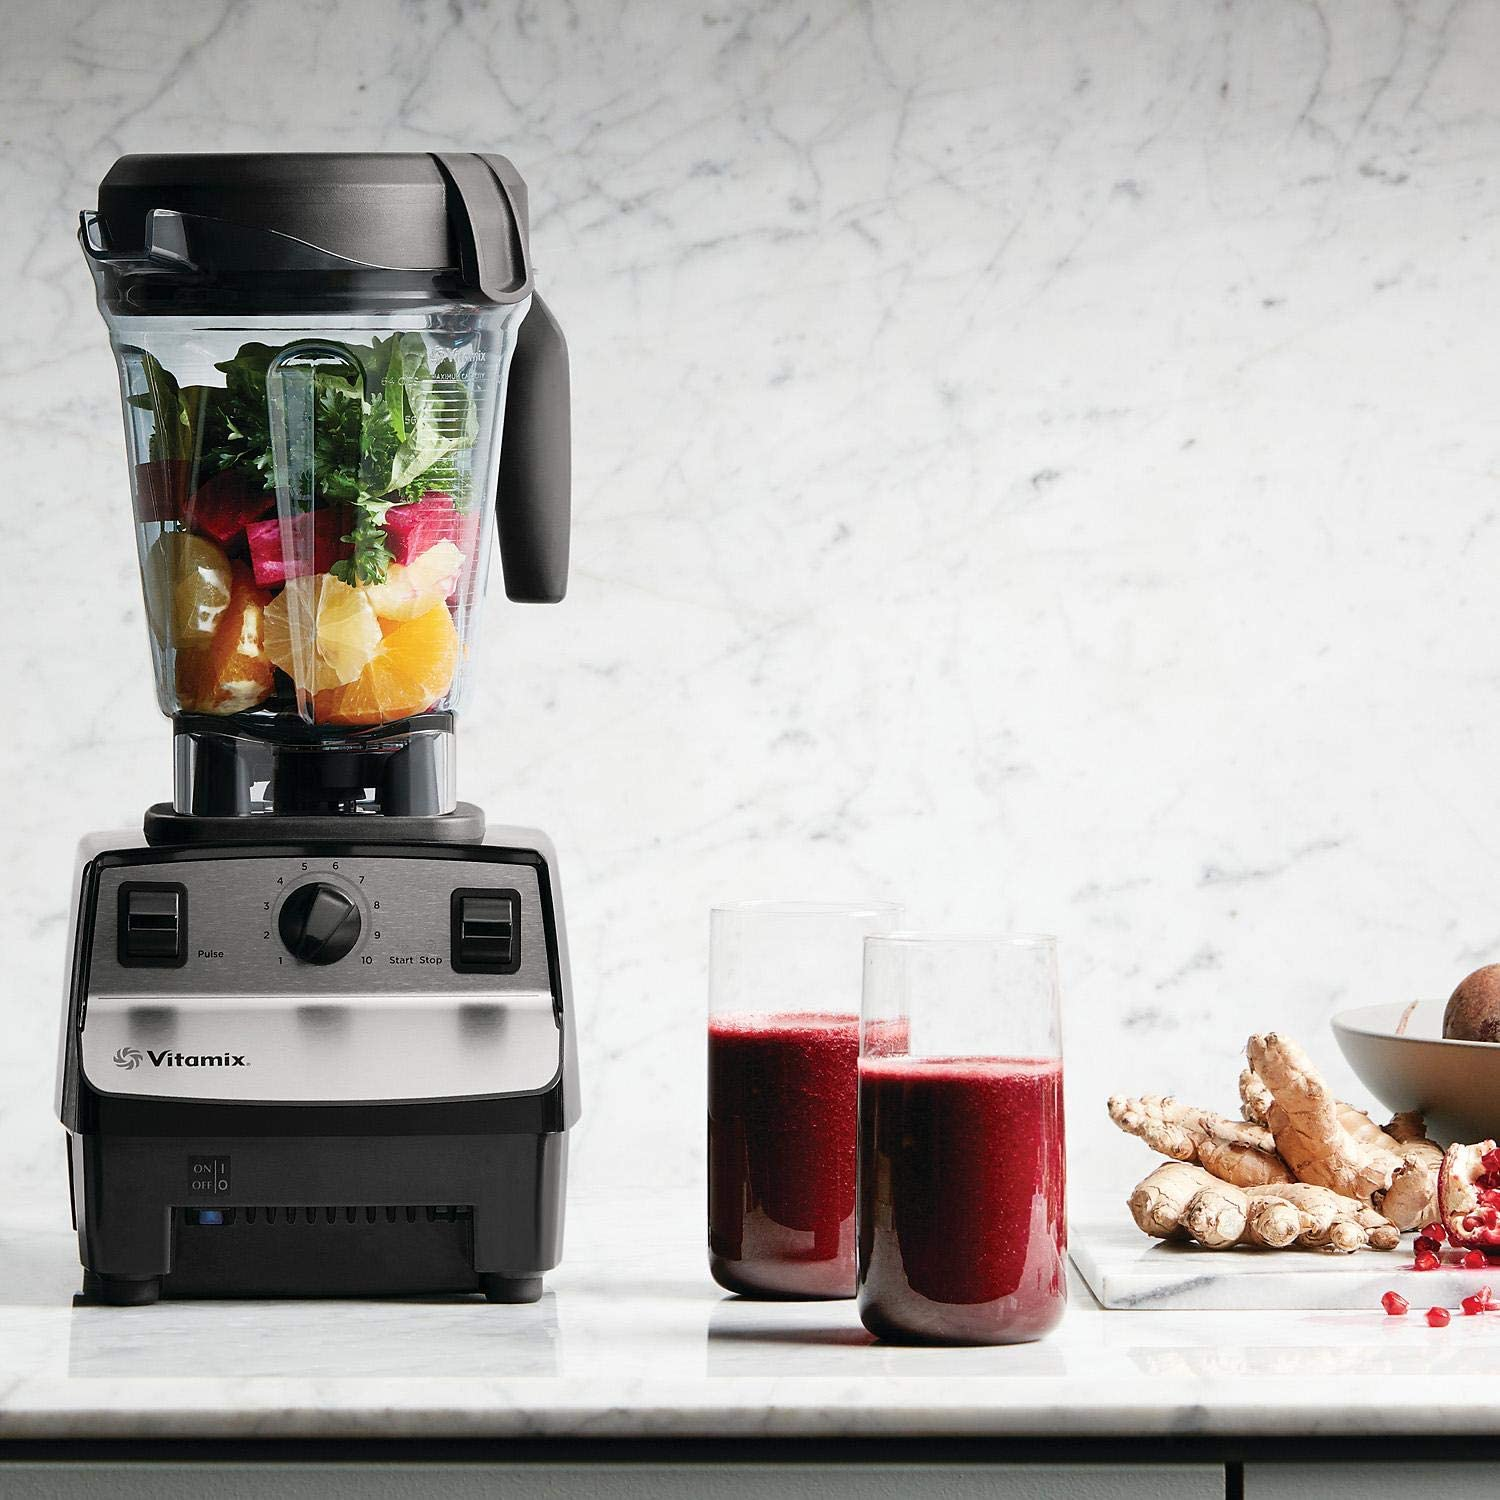 Vitamix 5300 filled with ingredients and two glasses of red fruit juice next to it.